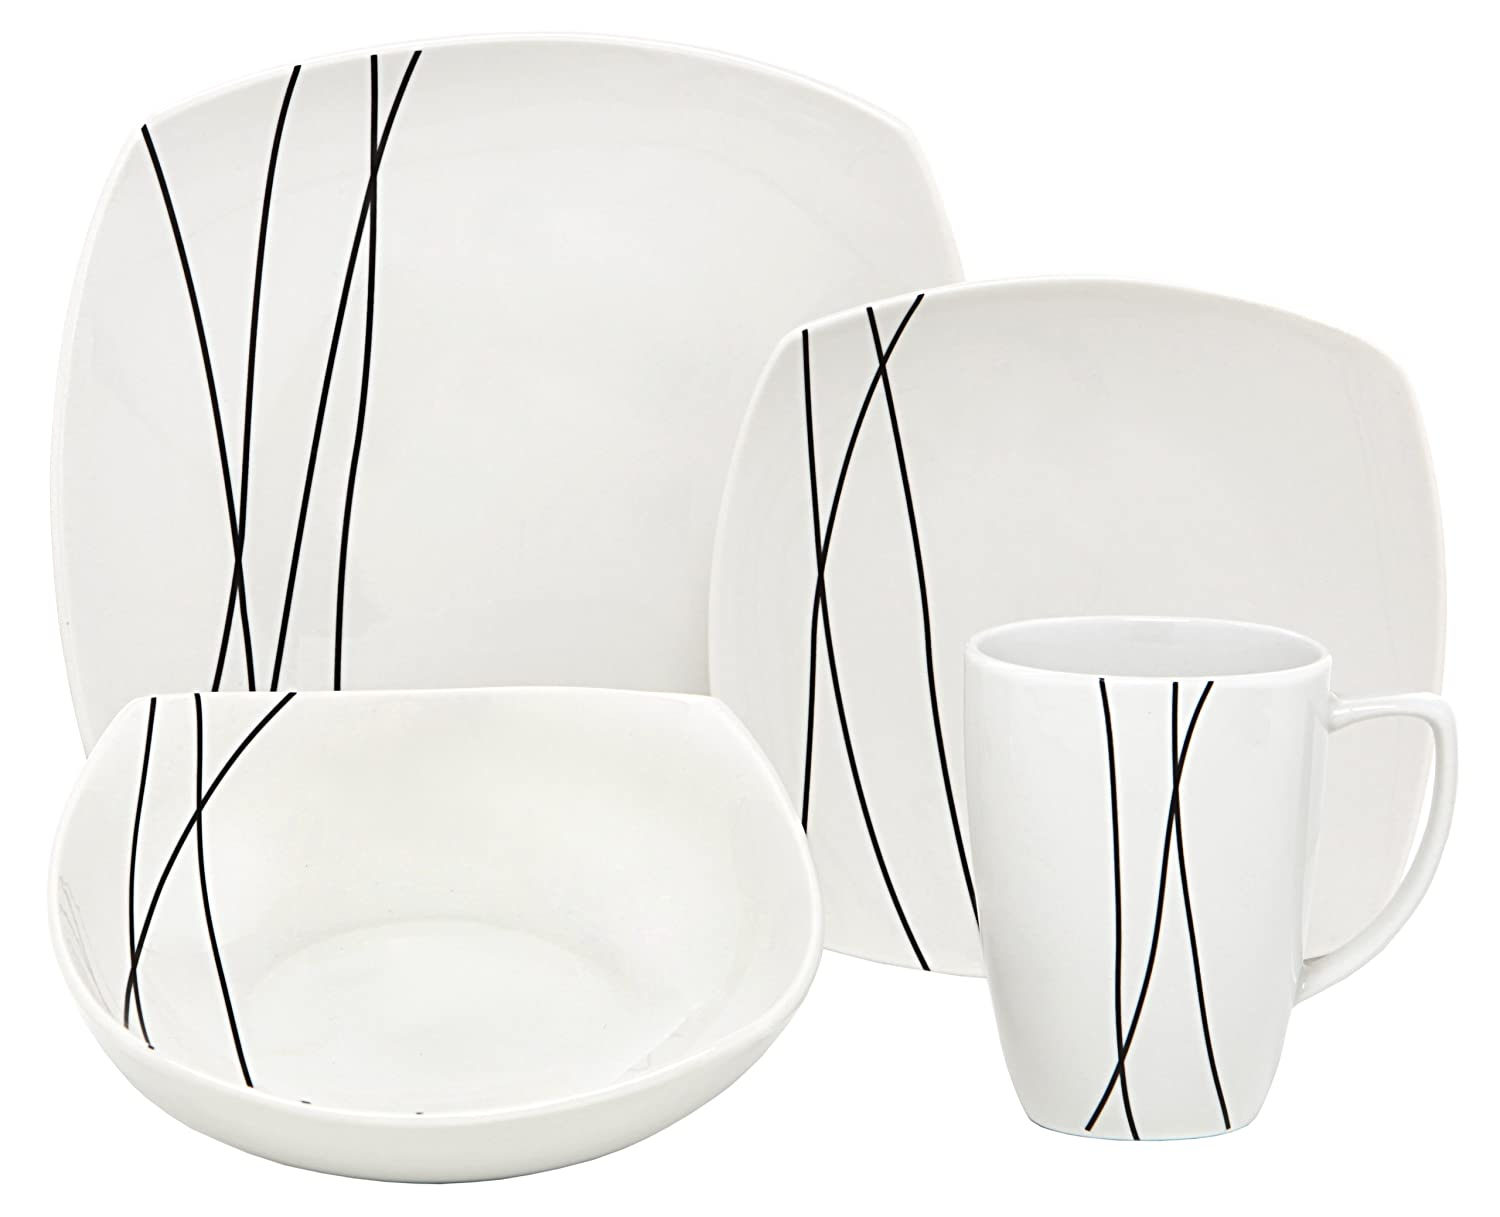 Melange Square 16-Piece Porcelain Dinnerware Set (Black Lines) | Service for 4 | Microwave, Dishwasher & Oven Safe | Dinner Plate, Salad Plate, Soup Bowl & Mug (4 Each)